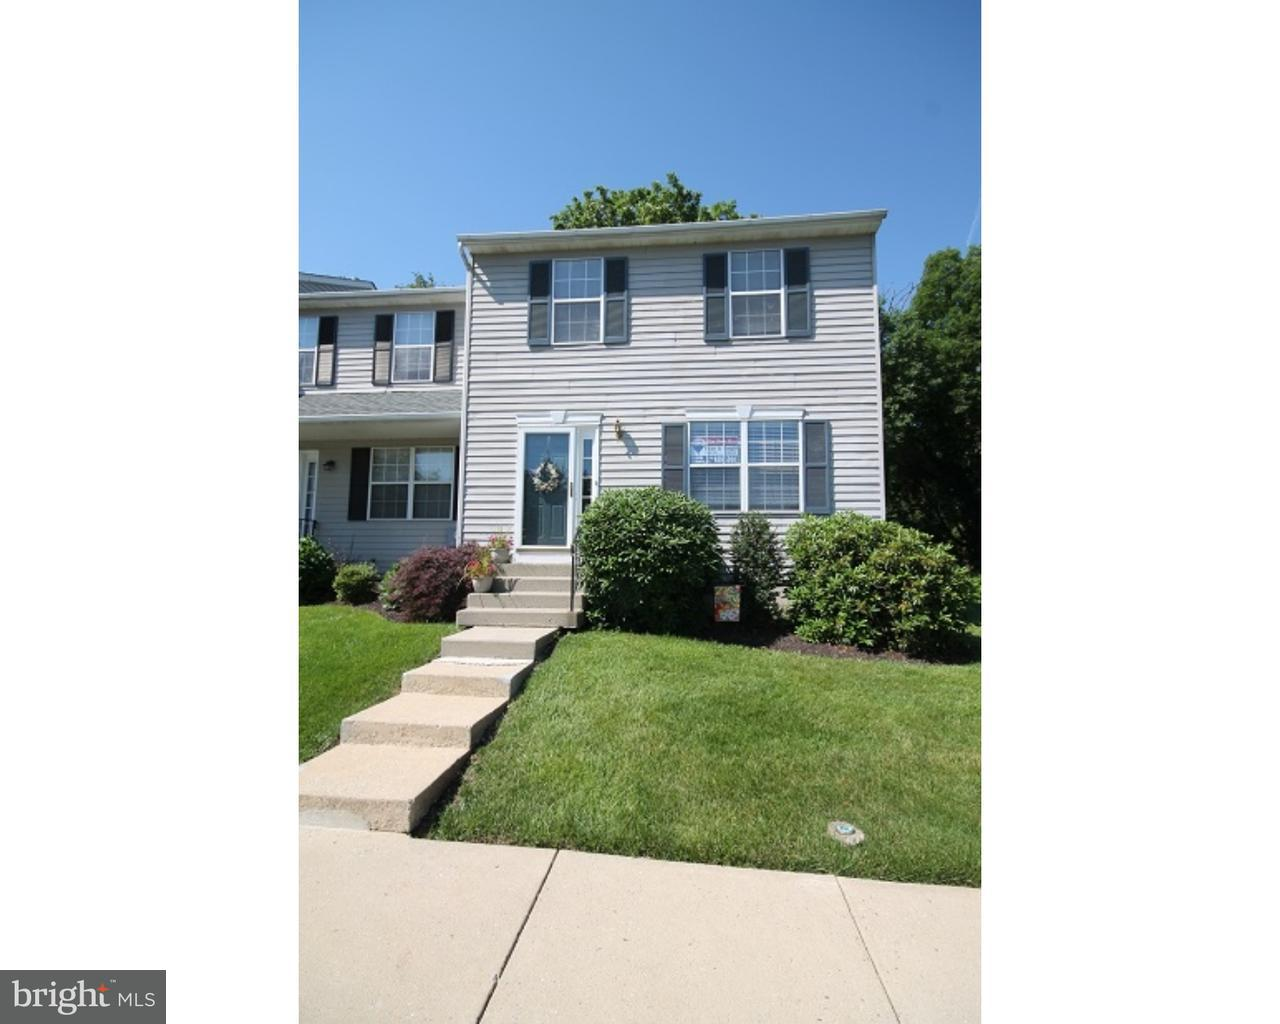 133 HERITAGE DR, COLLEGEVILLE - Listed at $215,000, COLLEGEVILLE